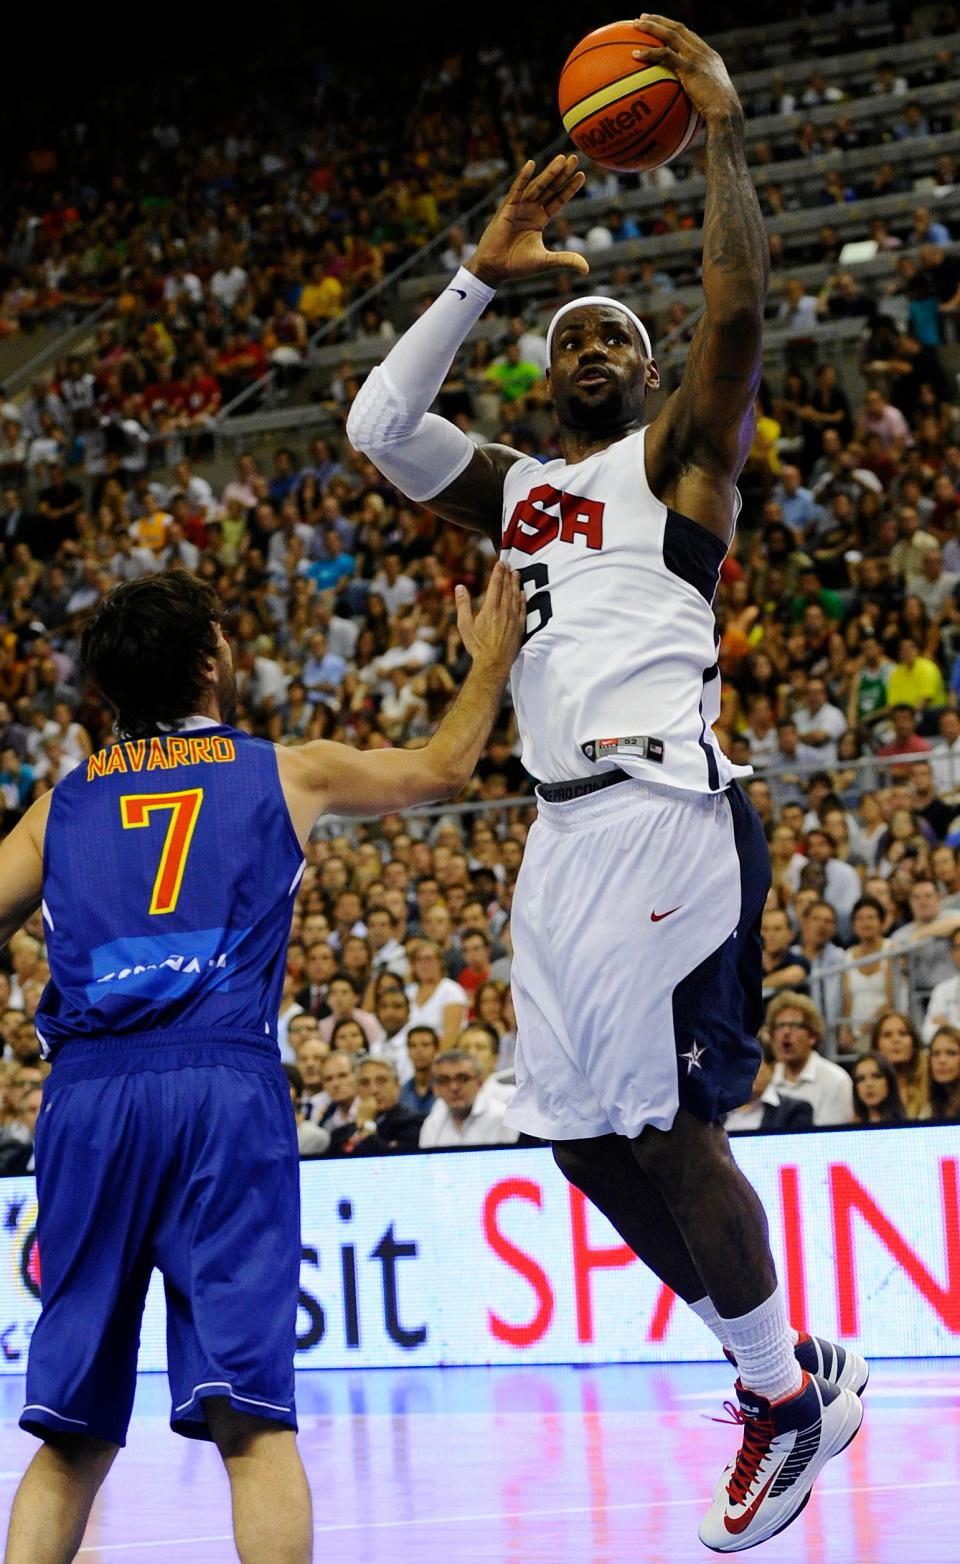 LeBron James of the US Men's Senior National Team, right, jumps for the ball against Juan Carlos Navarro, left, of Spain Men's Senior National Team during an exhibition match between Spain and the United States Tuesday, July 24, 2012, in Barcelona, Spain, in preparation for the 2012 Summer Olympics. (AP Photo/Manu Fernandez)